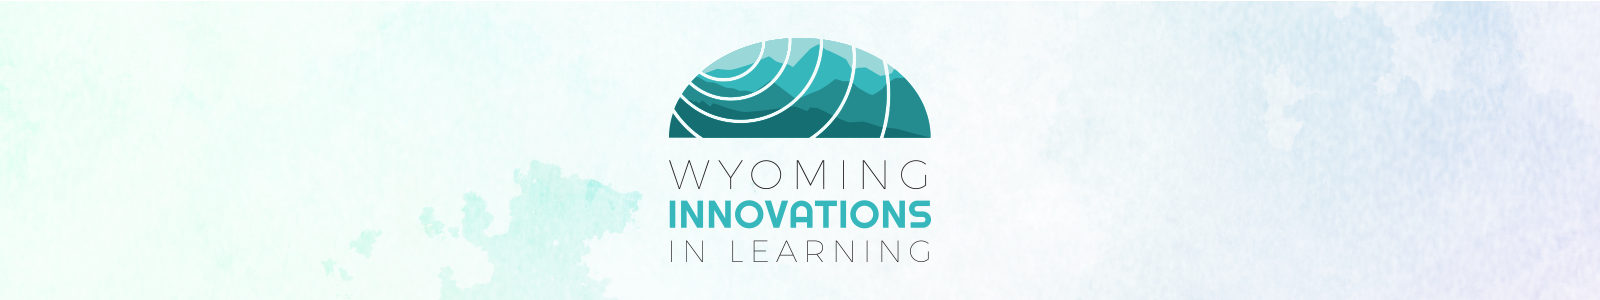 Wyoming Innovations in Learning 2017